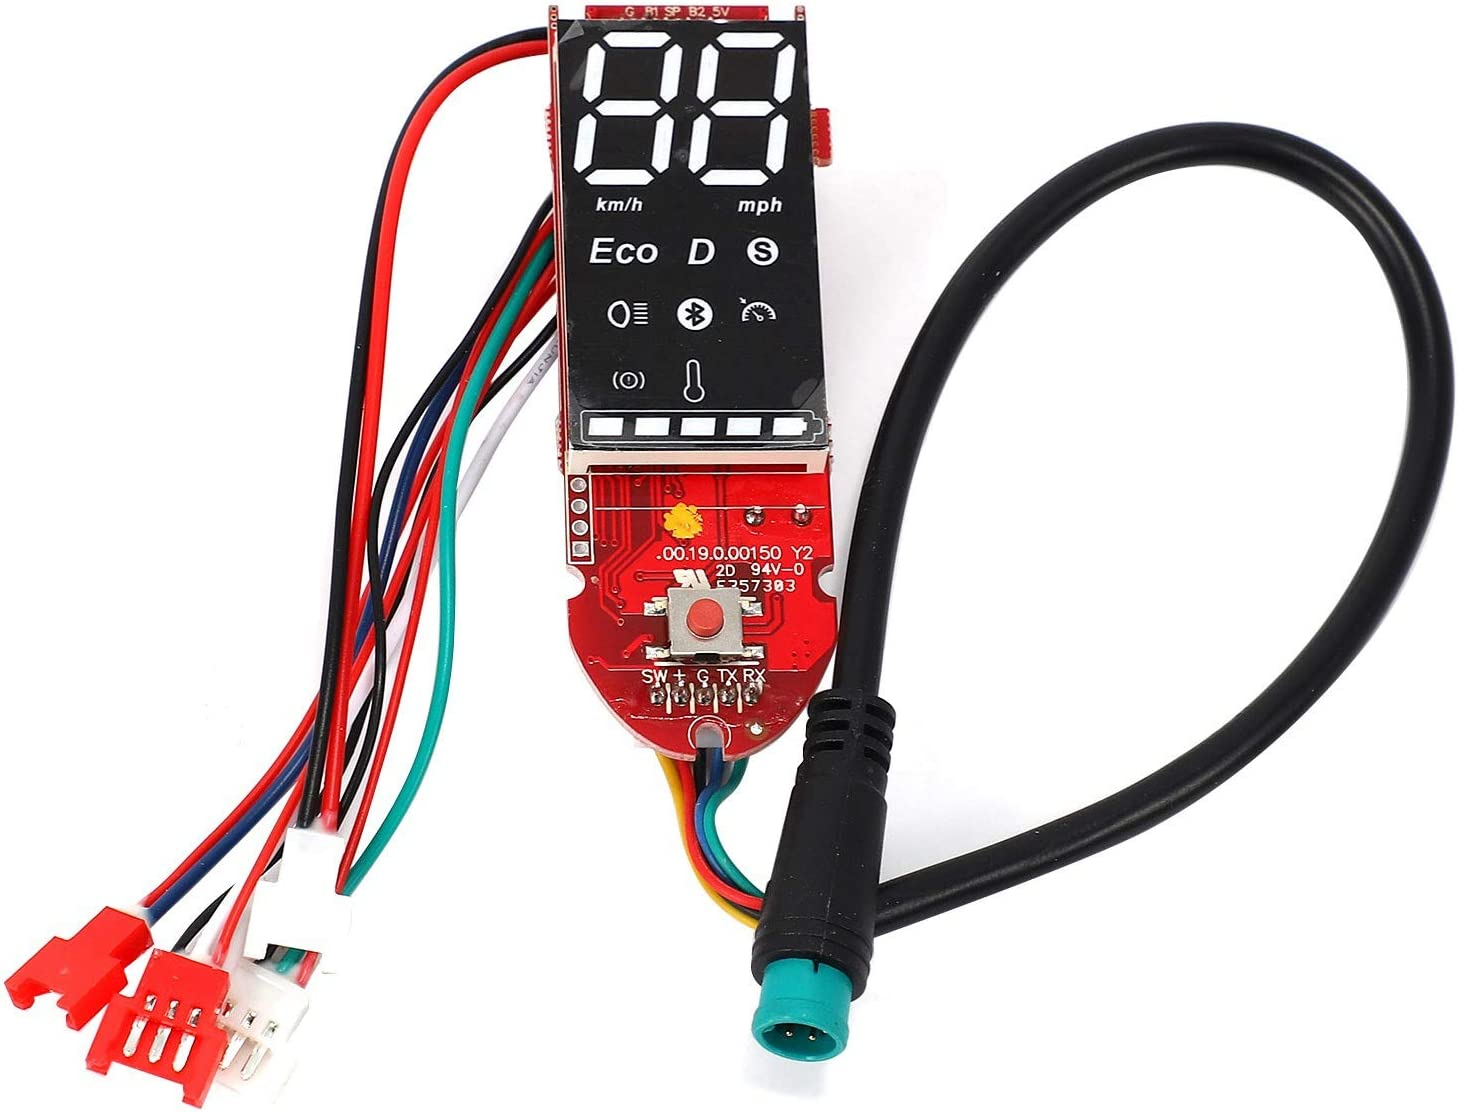 Haudang Scooter Controller Board Motherboard 350W 36V for M365 M365 Pro Control Brakes and Displays